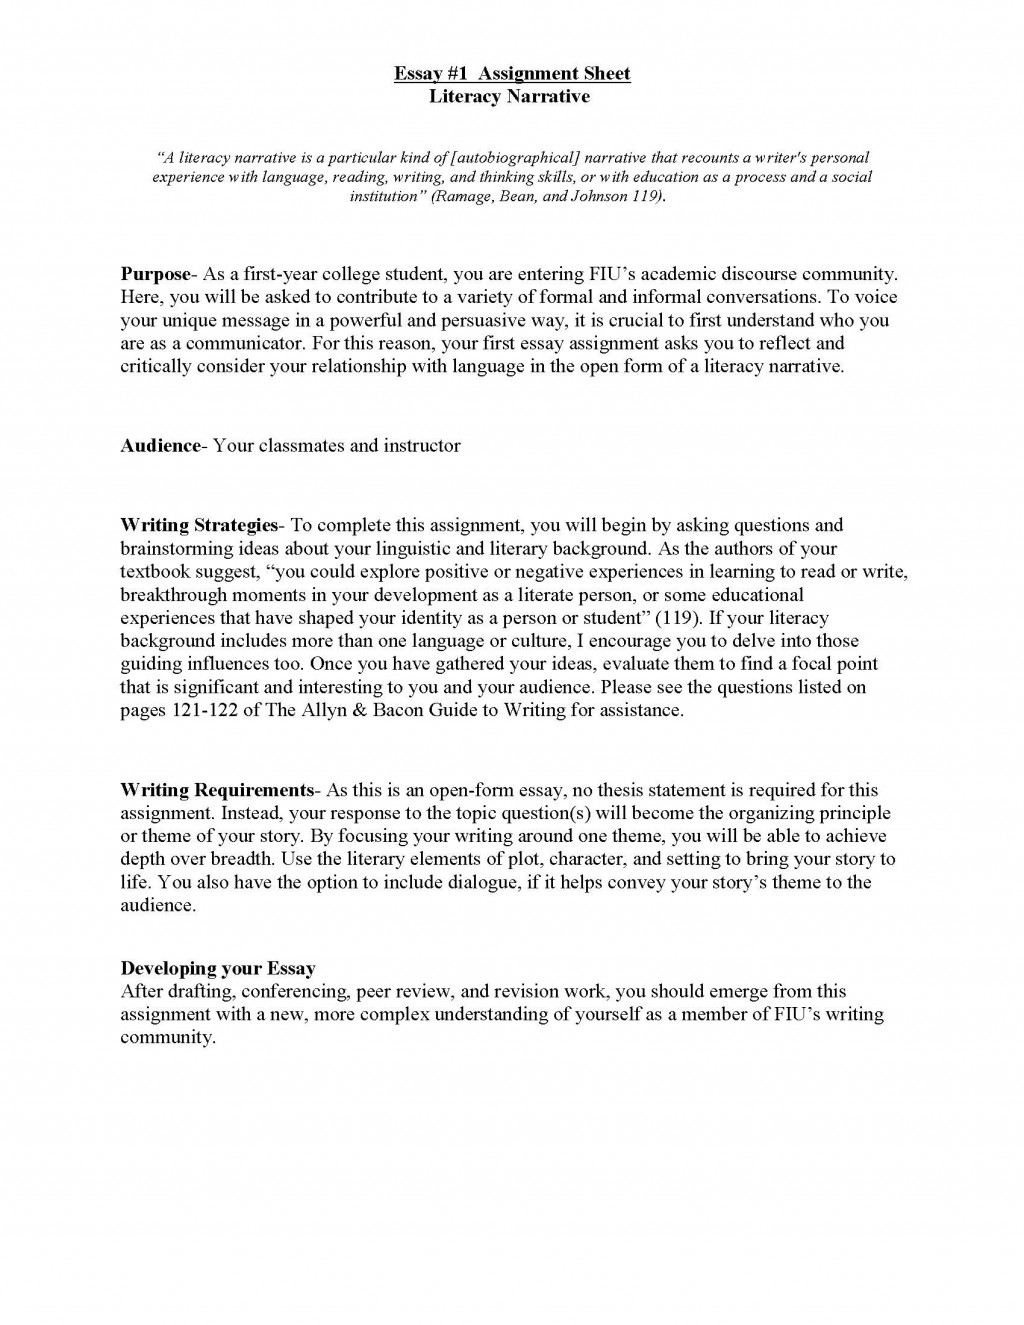 001 Literacy Narrative Unit Assignment Spring 2012 Page 1 Research Paper Personal Essay Wonderful Topics Large